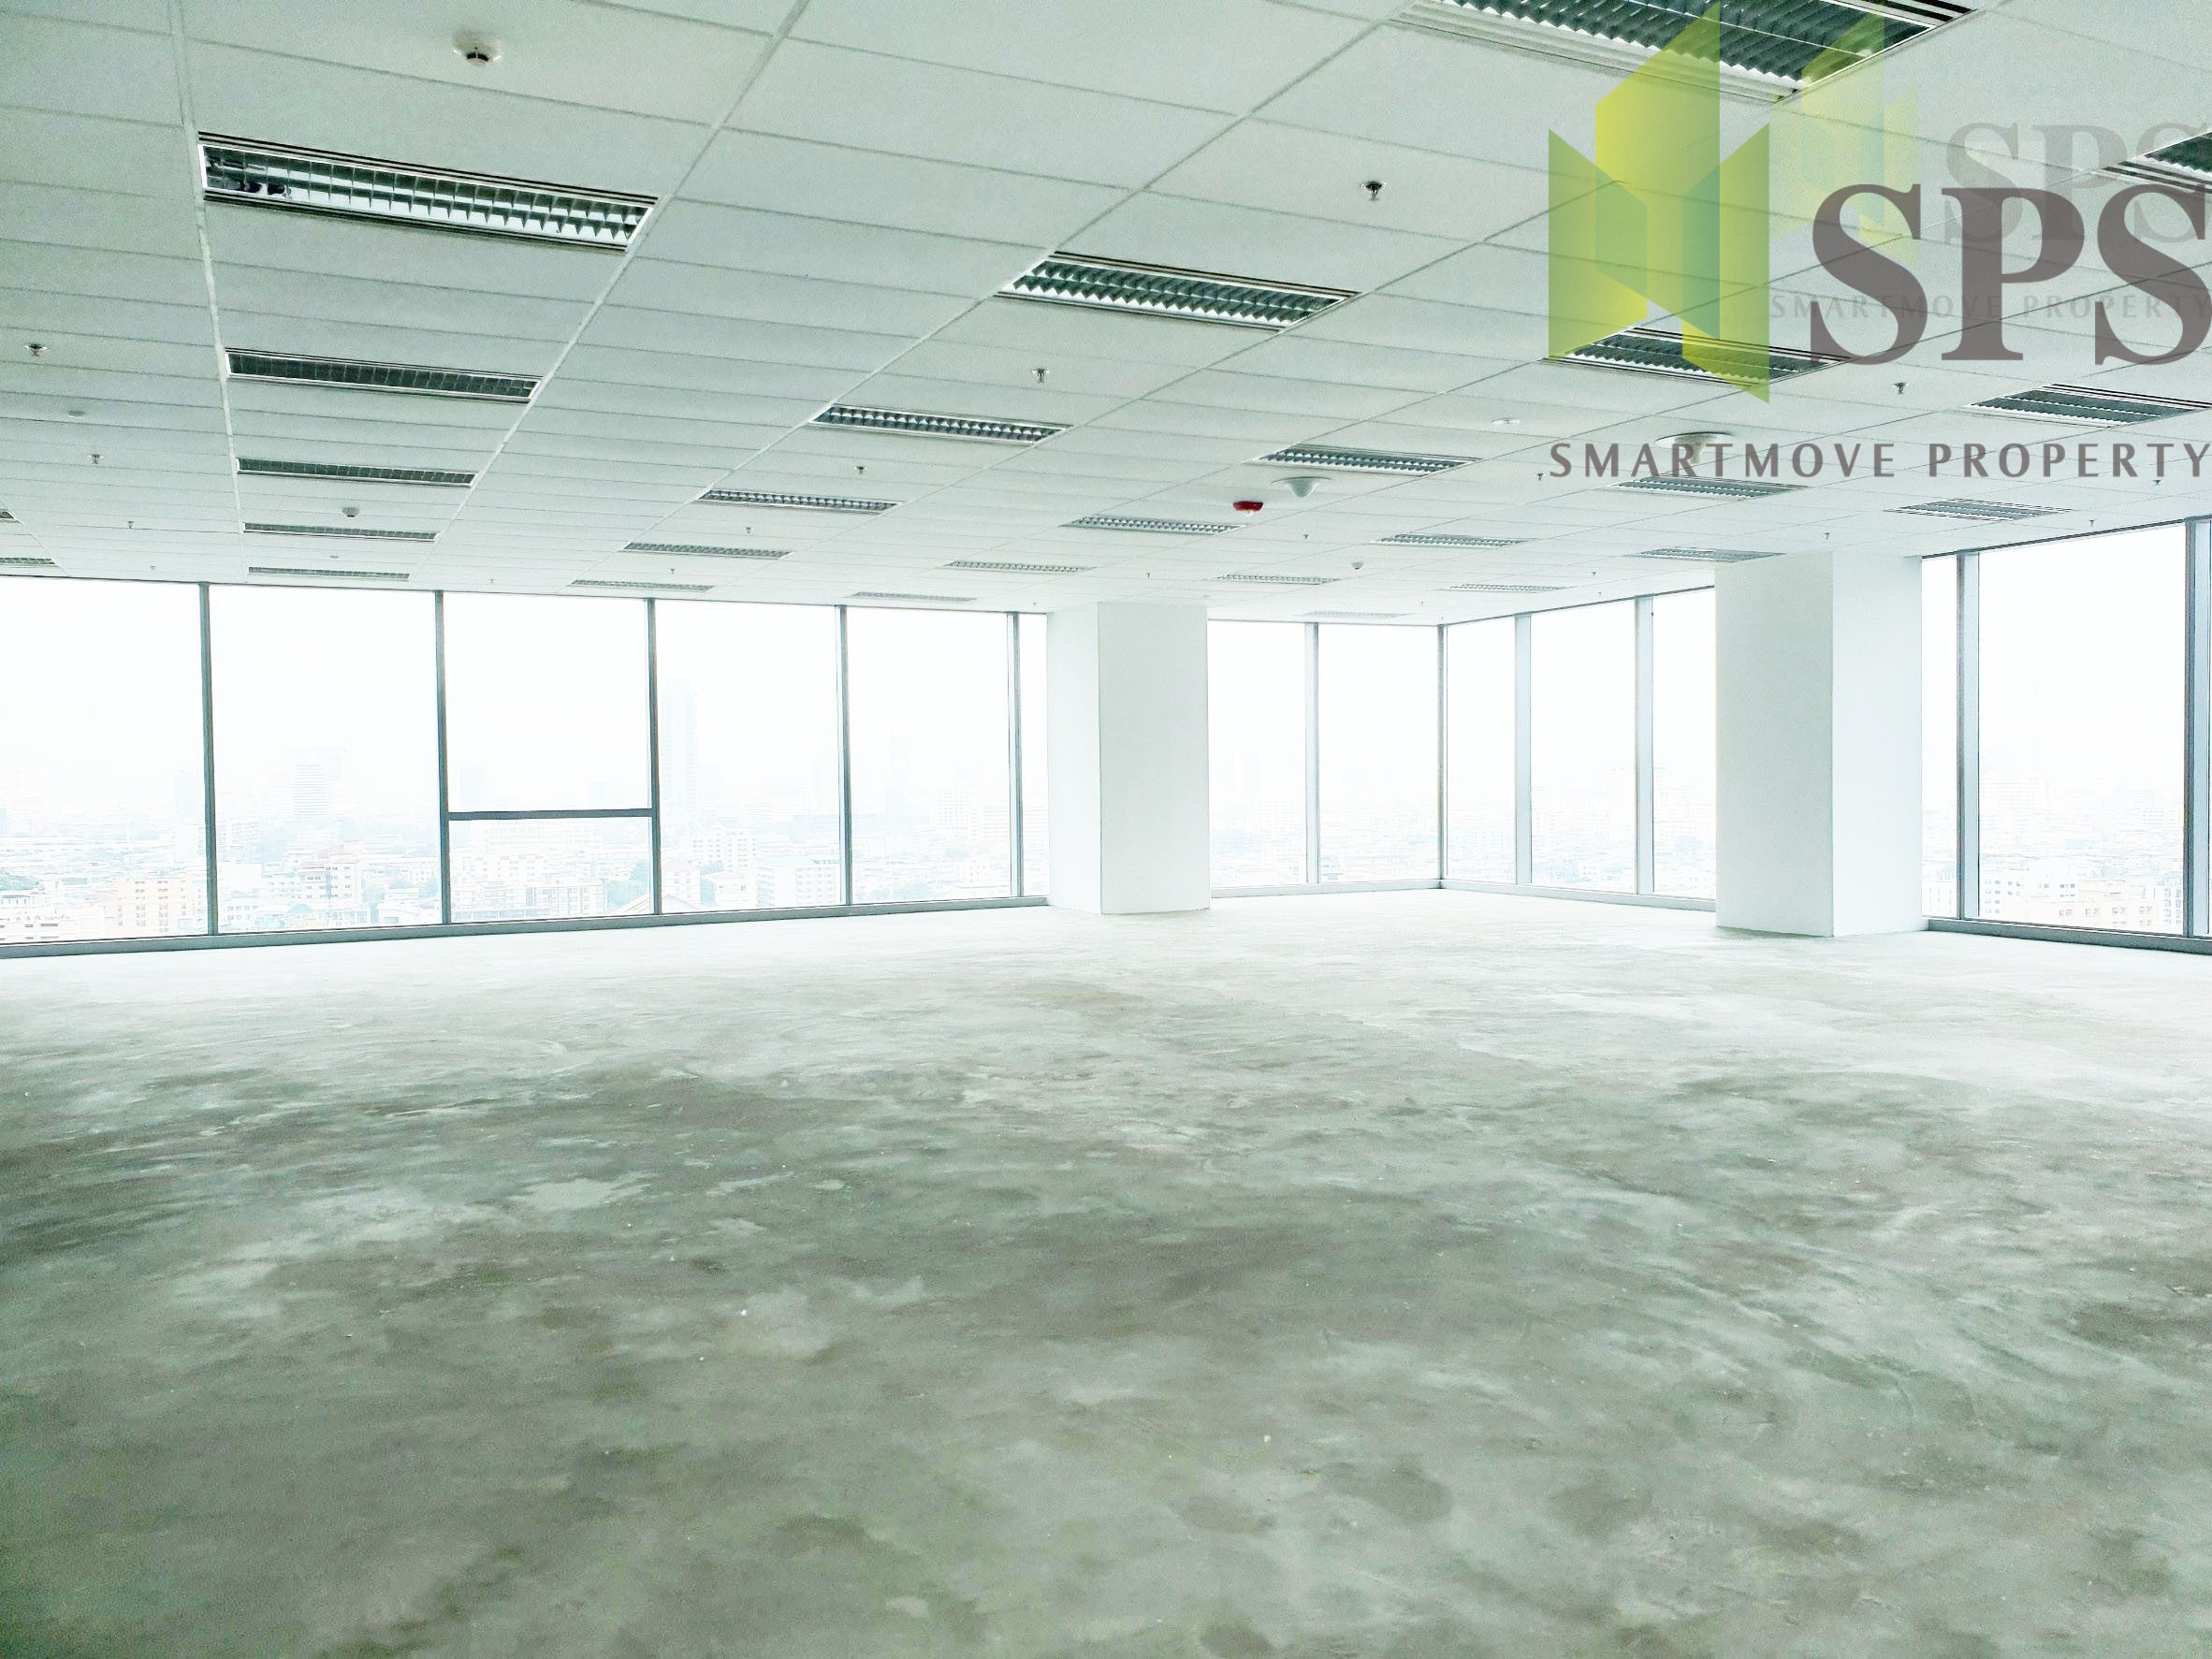 Office space building AIA Capital Center CBD Located on Ratchadapisek Road CBD ( SPSPE329)